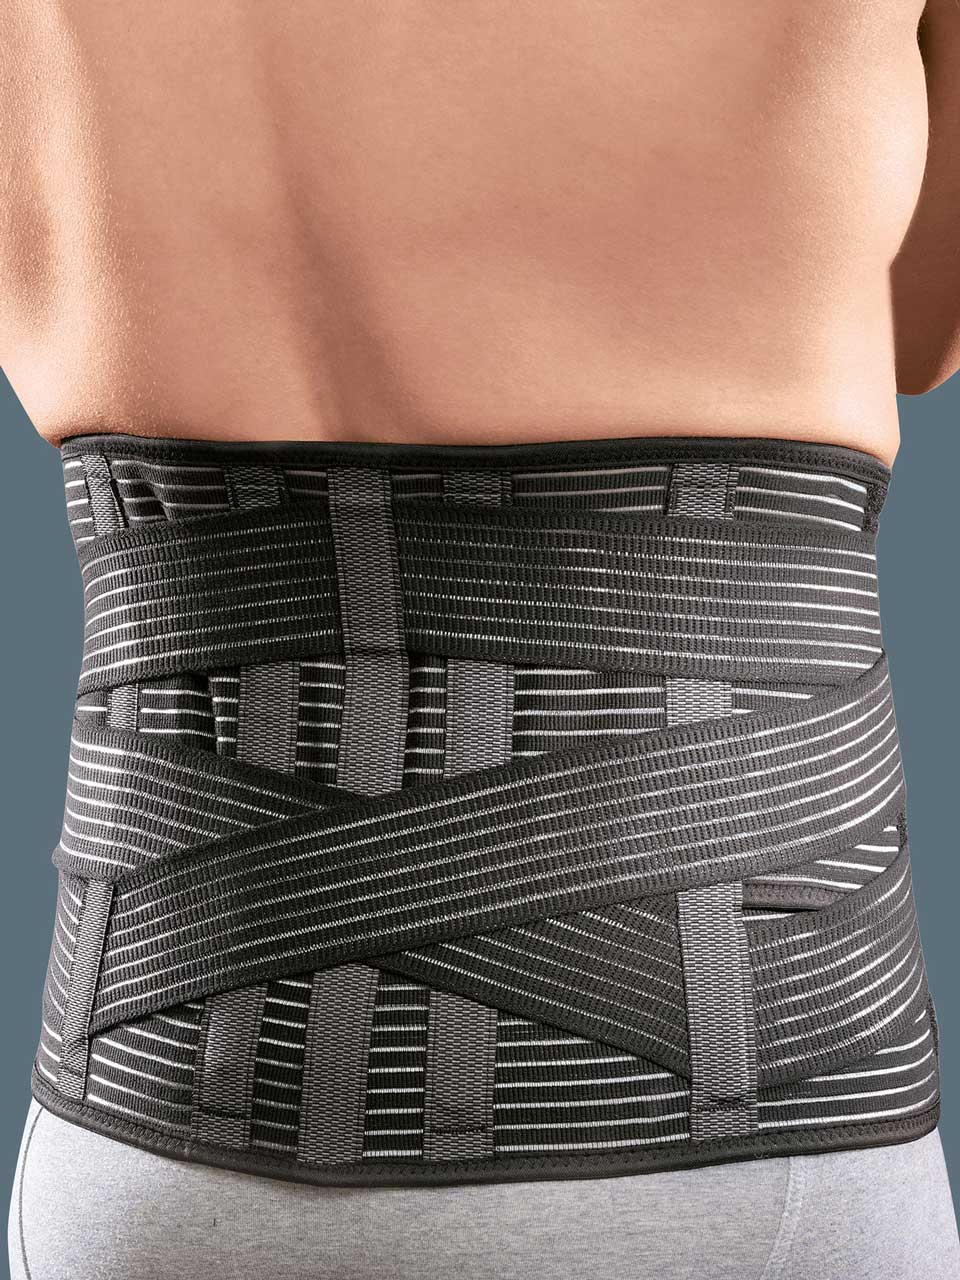 Low elastic orthosis with elastic straps for stabilising and supporting the lumbar spine, with thermoformable pad